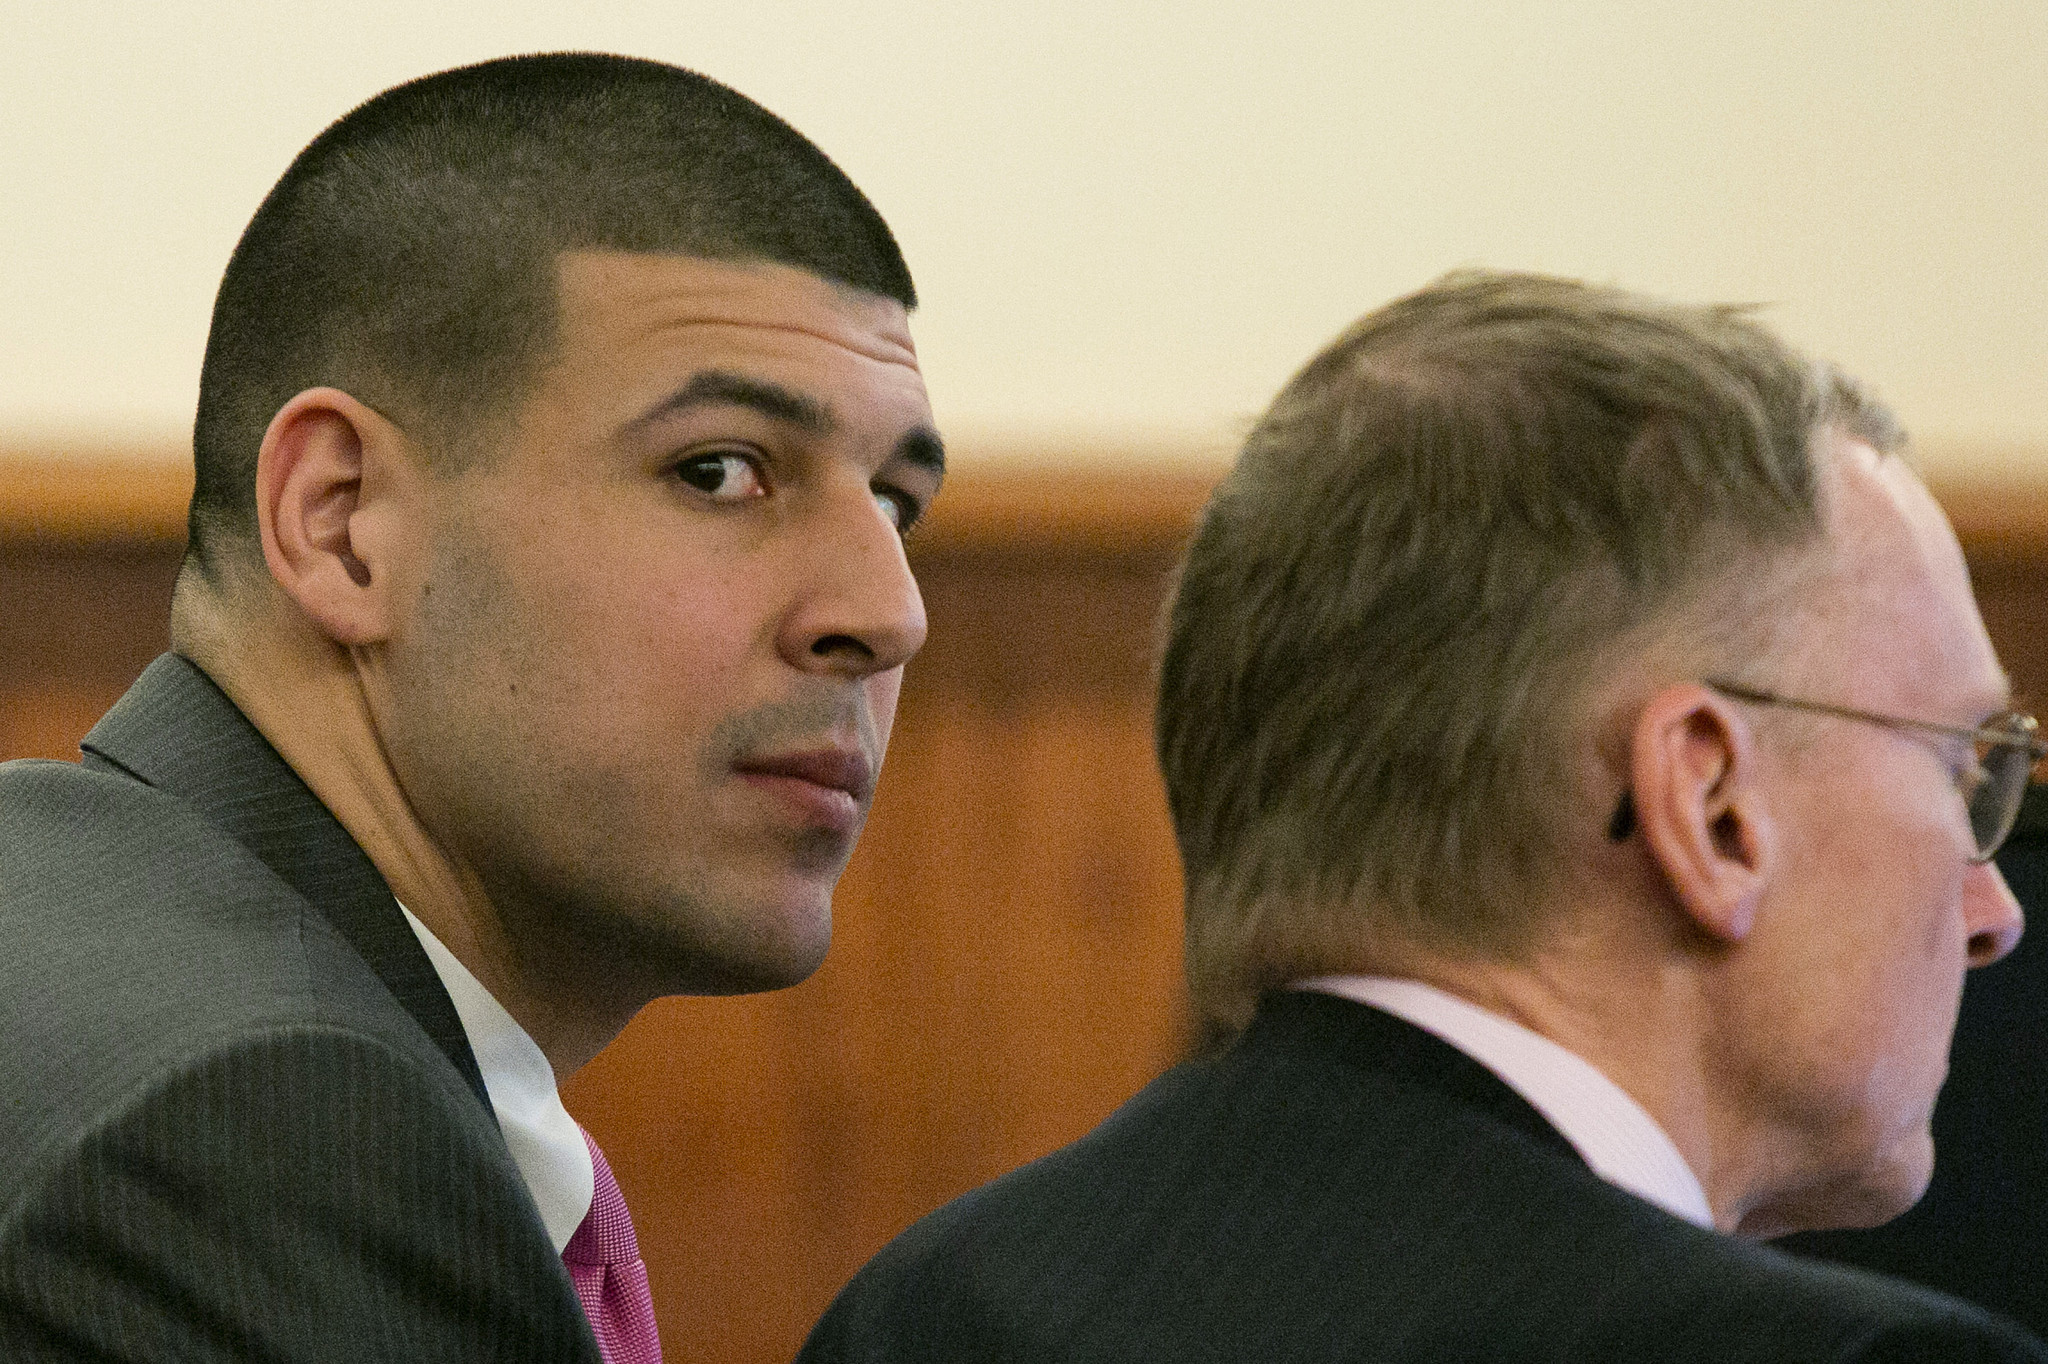 aaron hernandez murder case essay Aaron hernandez murder case on the night of june 17, 2013 former new england patriot aaron hernandez allegedly committed murder on 27-year-old odin lloyd less than a mile from his home in an industrial park.